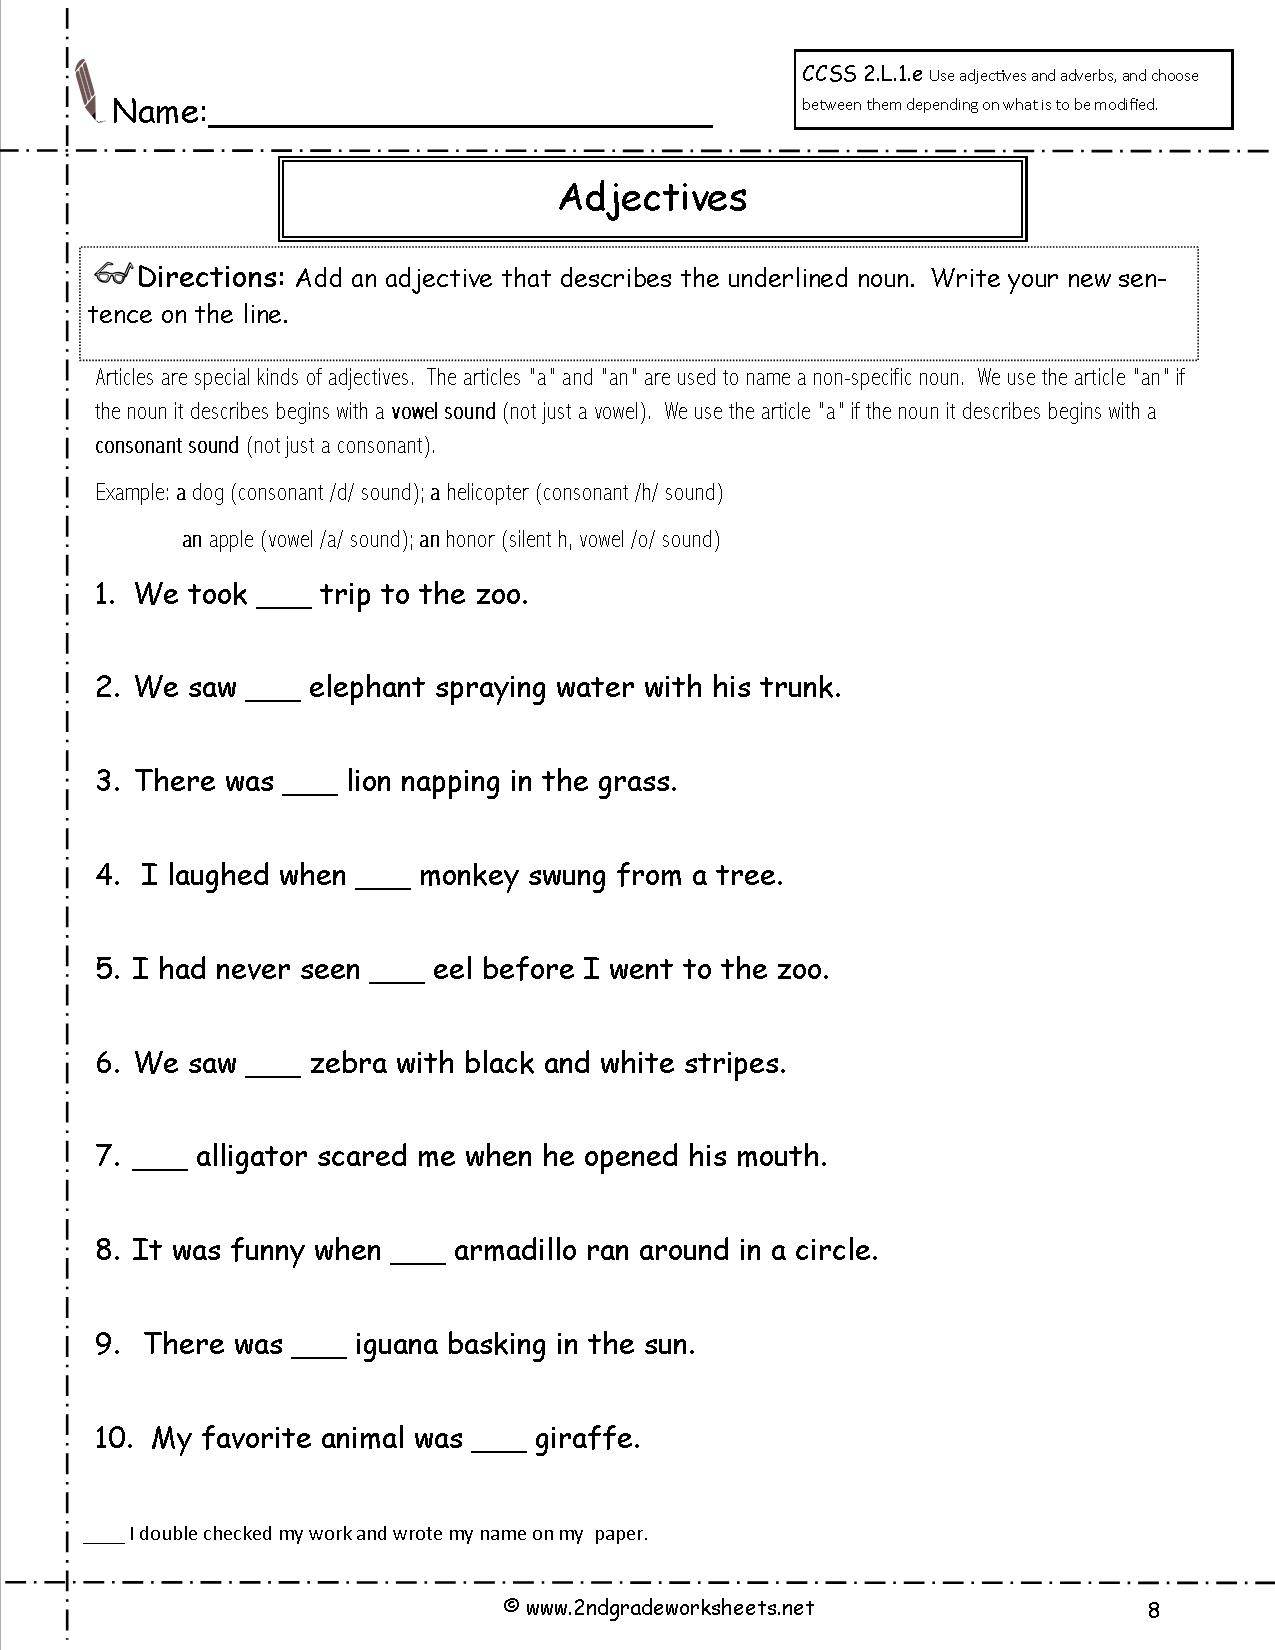 Free Printable Second Grade Worksheets » High School Worksheets | Printable Grammar Worksheets For Middle School